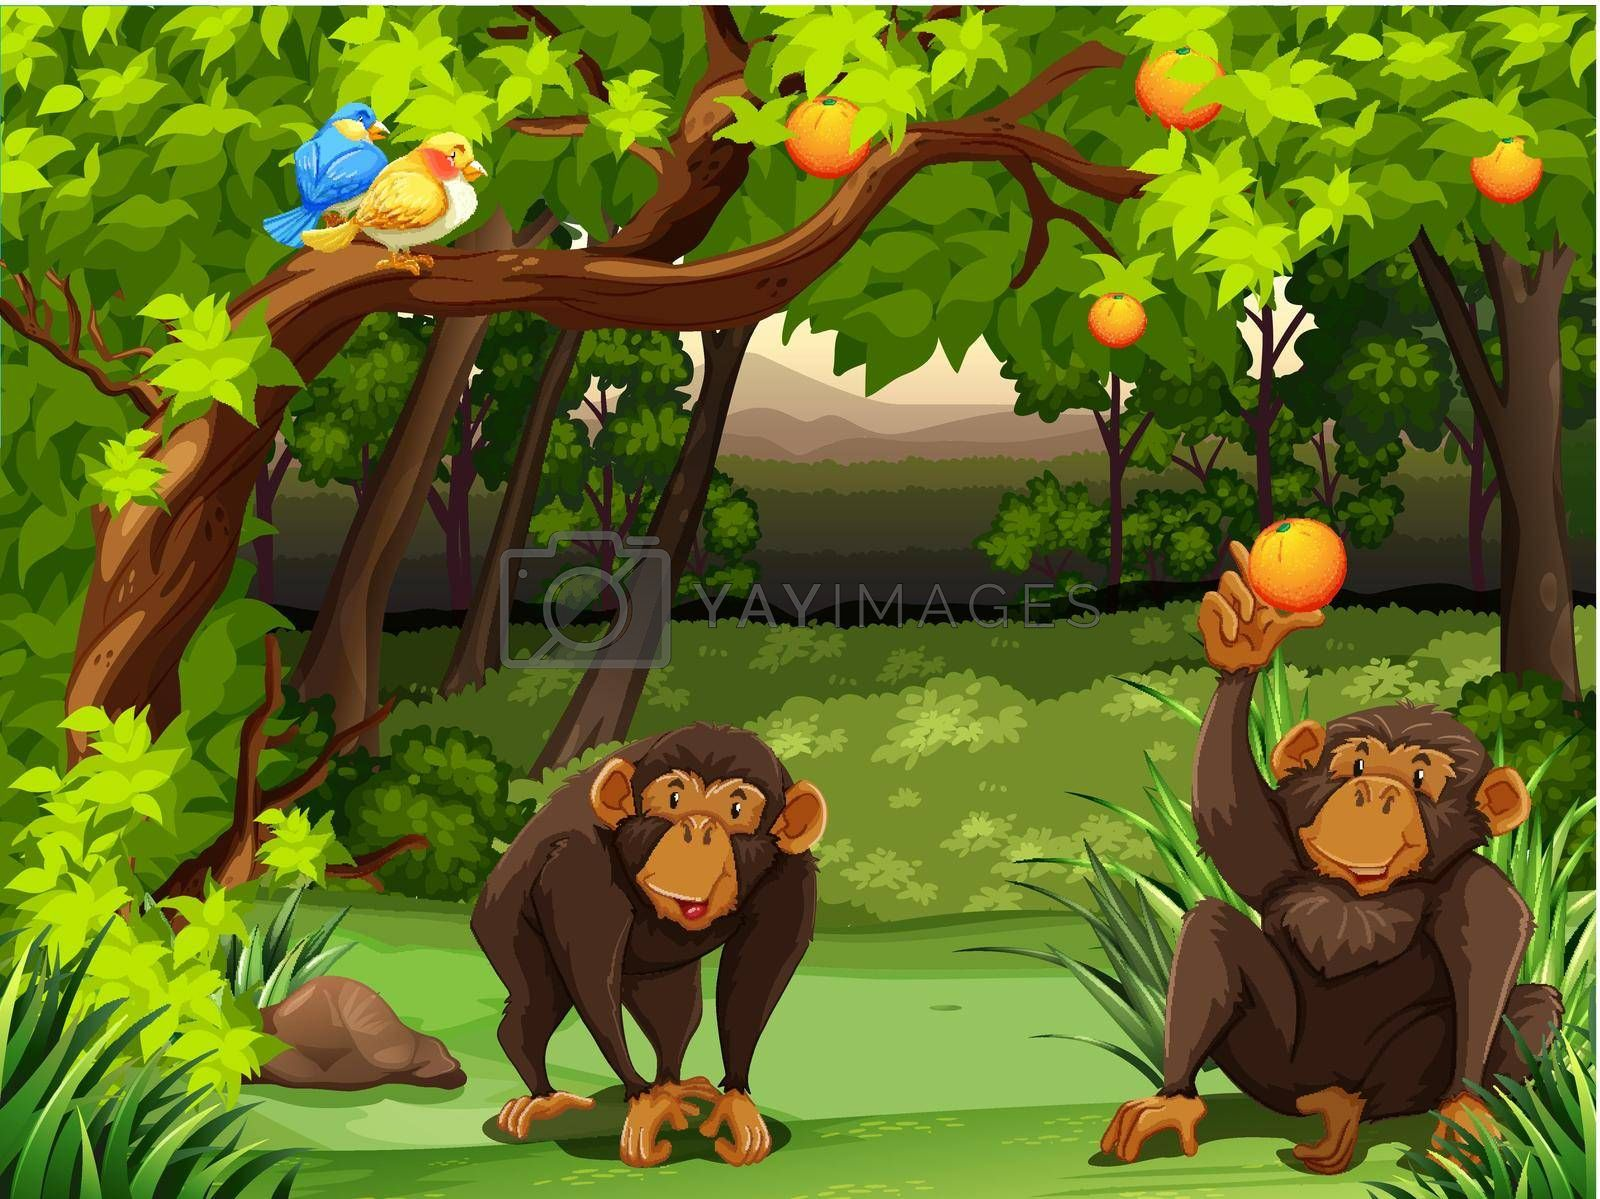 Royalty free image of Monkey by iimages